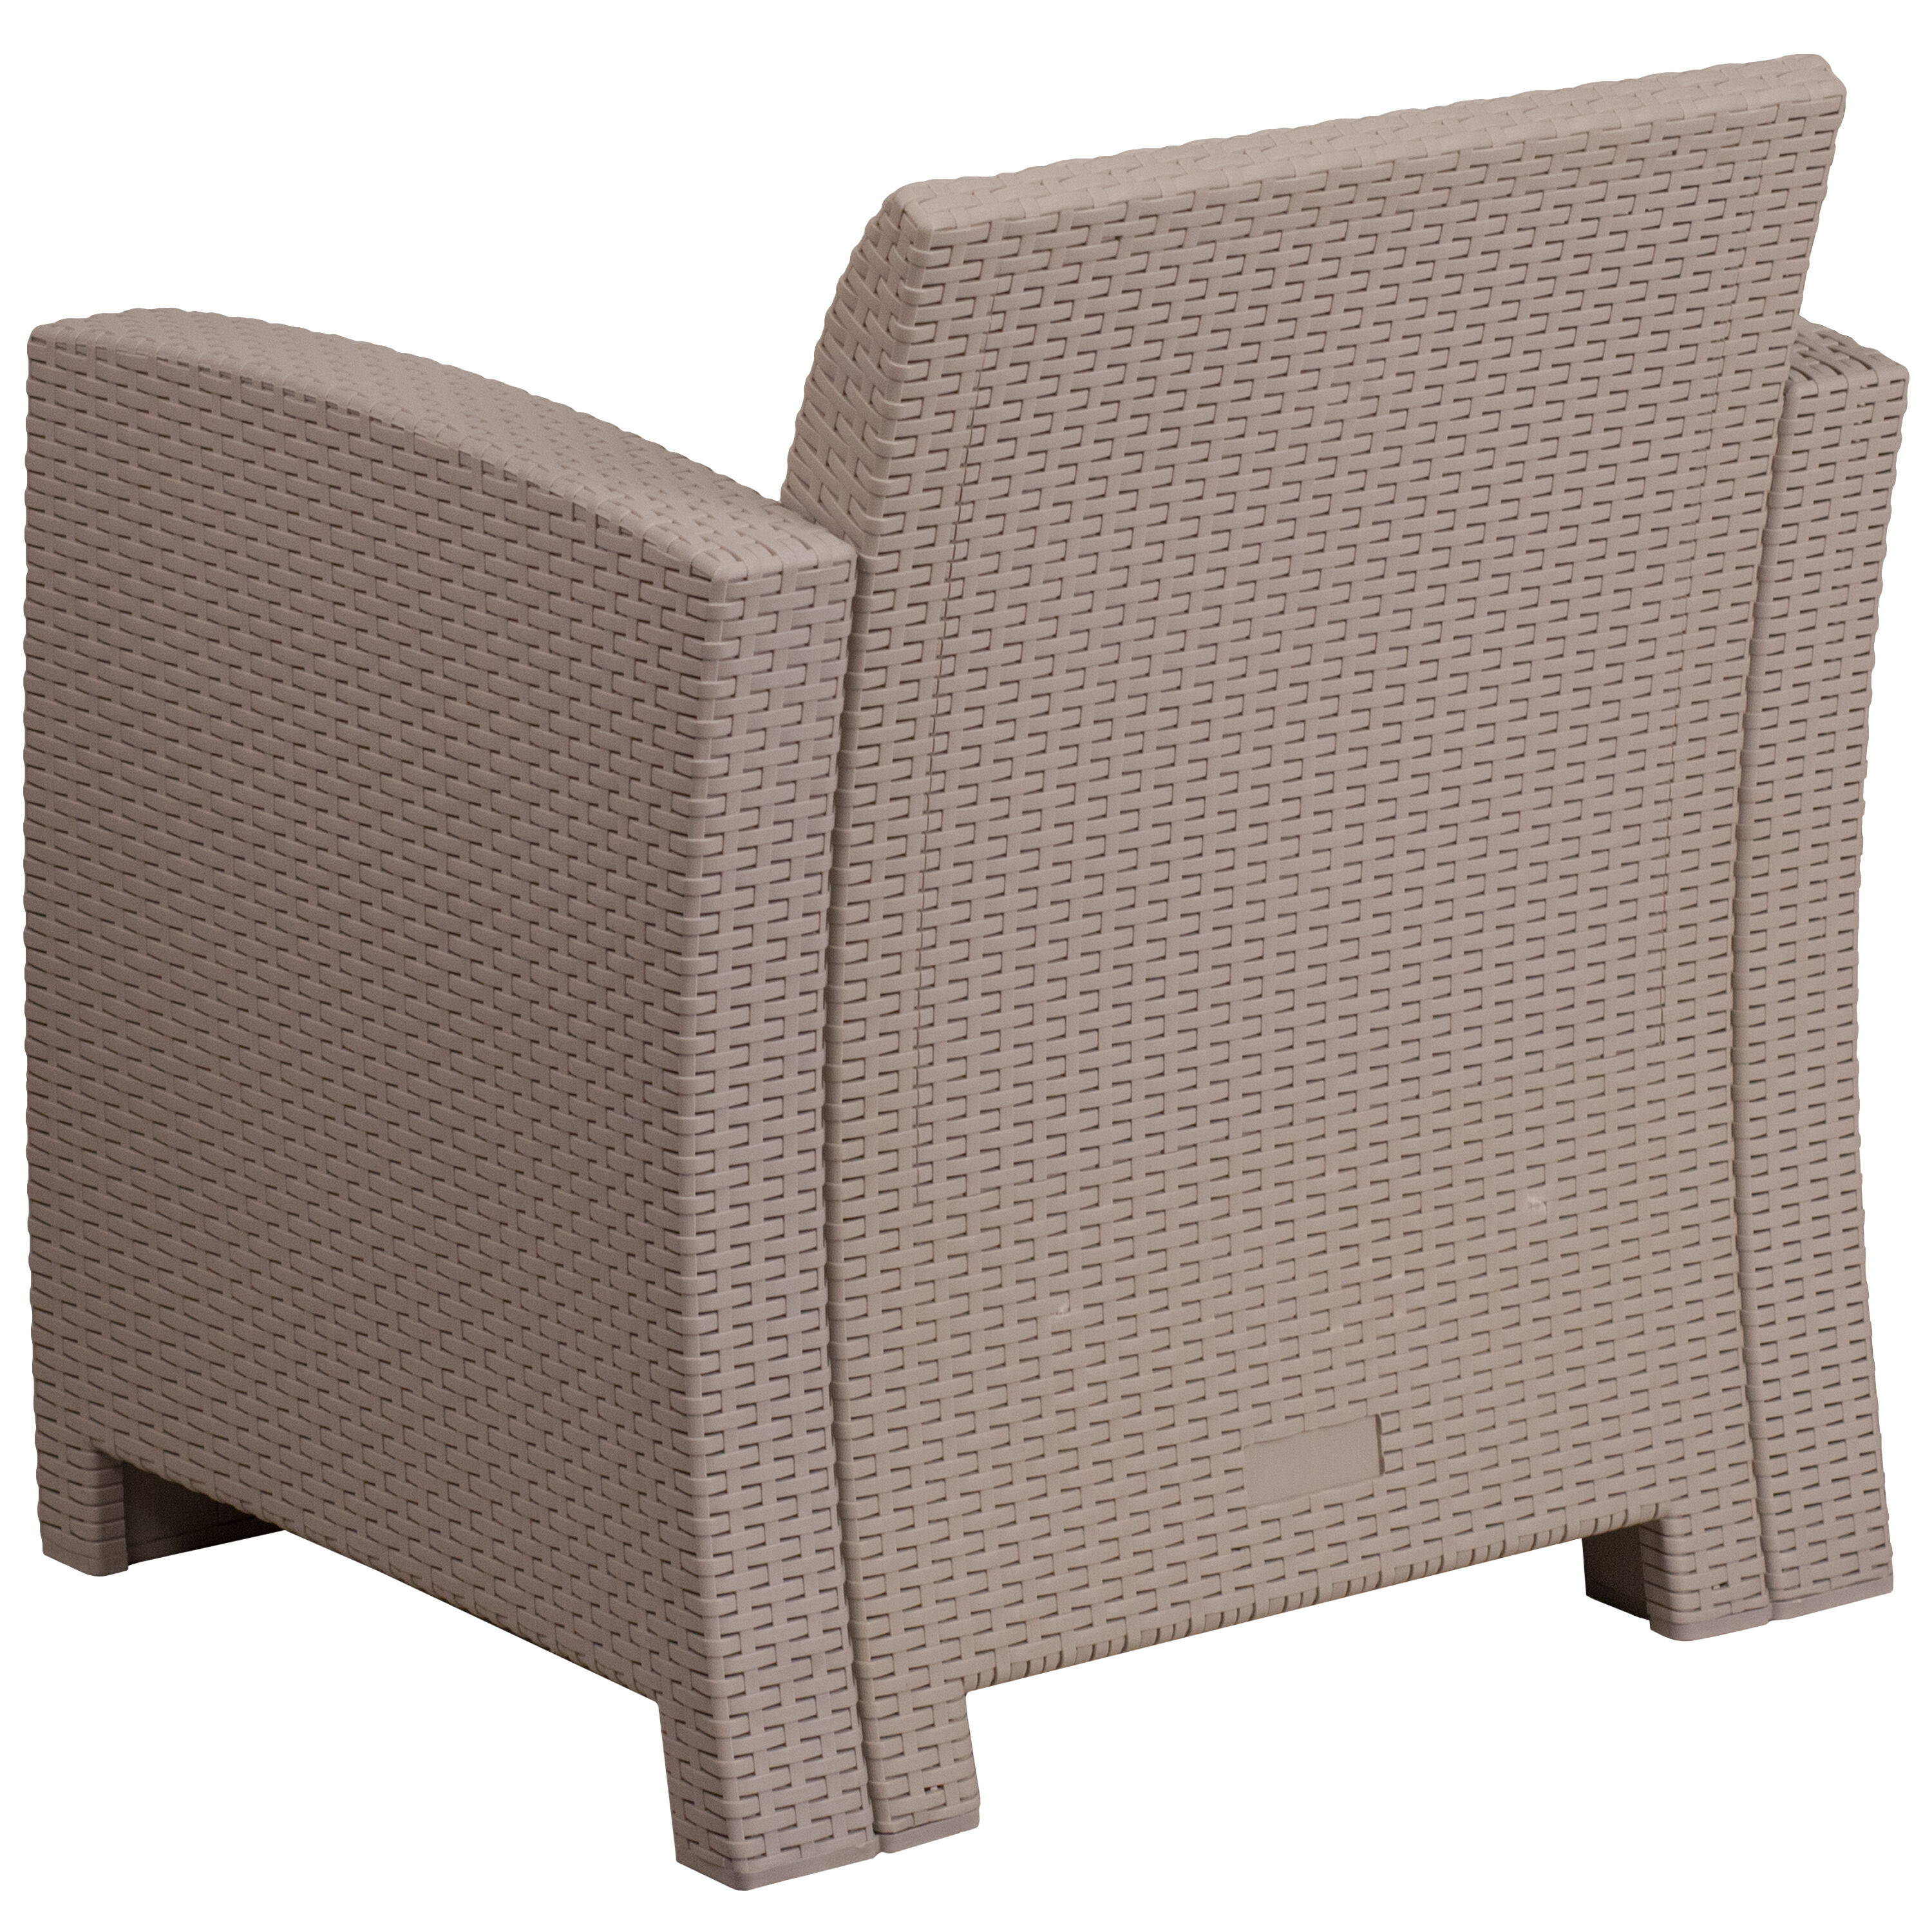 ... Our Light Gray Faux Rattan Chair With All Weather Light Gray Cushion Is  On Sale ...